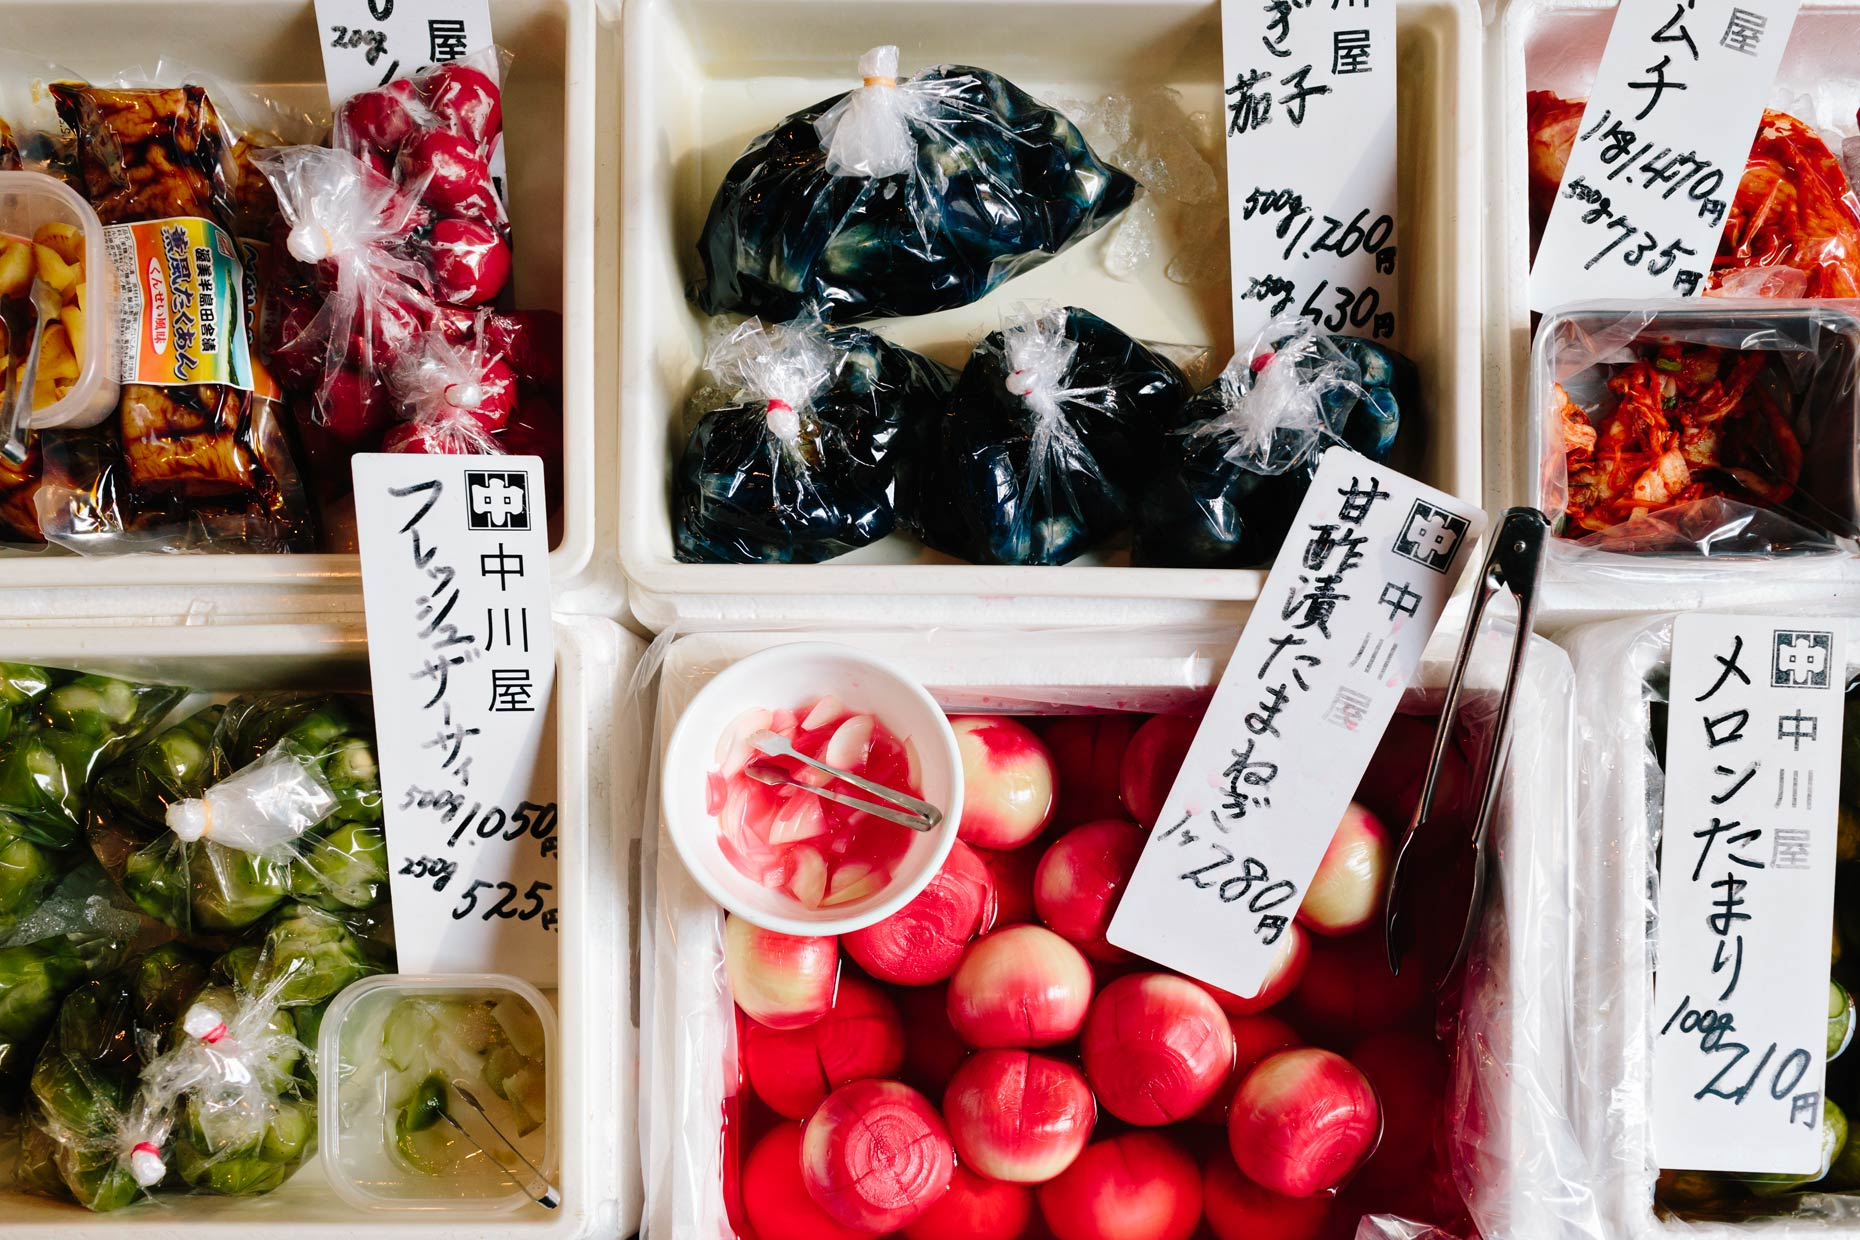 Kristin Teig Photography | Pickled veg - Tsukiji